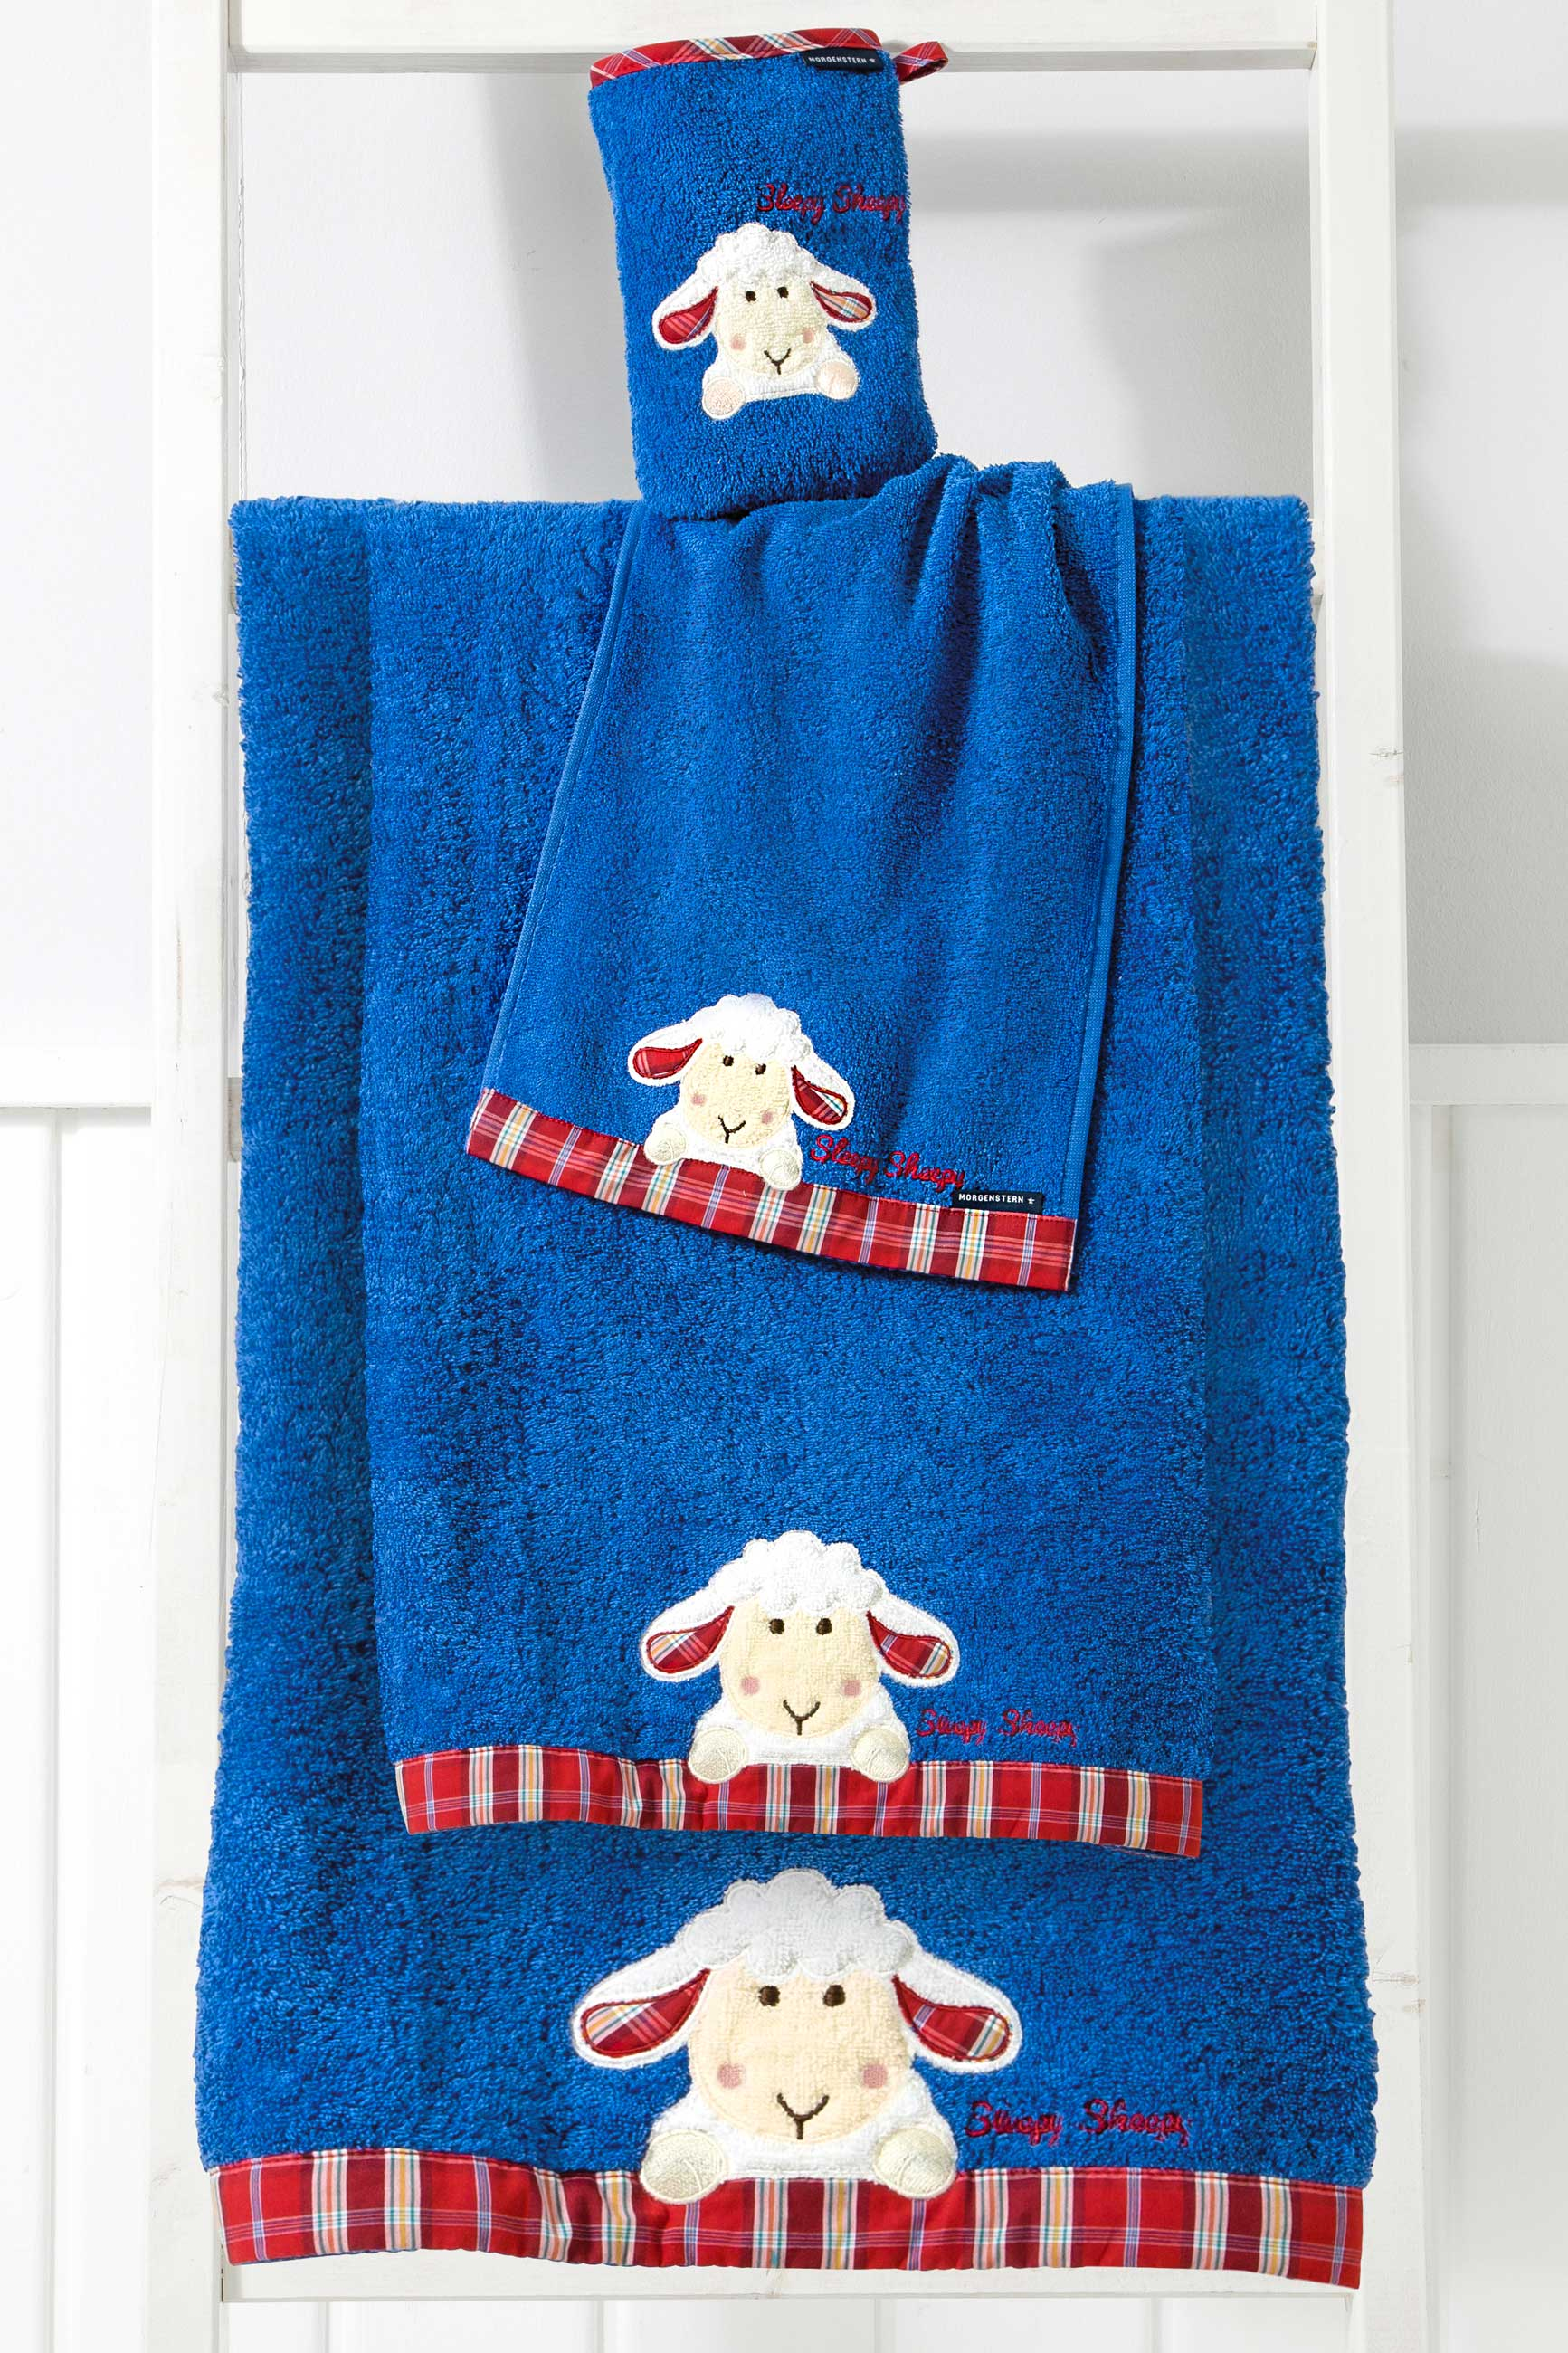 Kinder Handtuch Serie, Sleepy Sheepy Sweety, Morgenstern, Baumwolle, blau